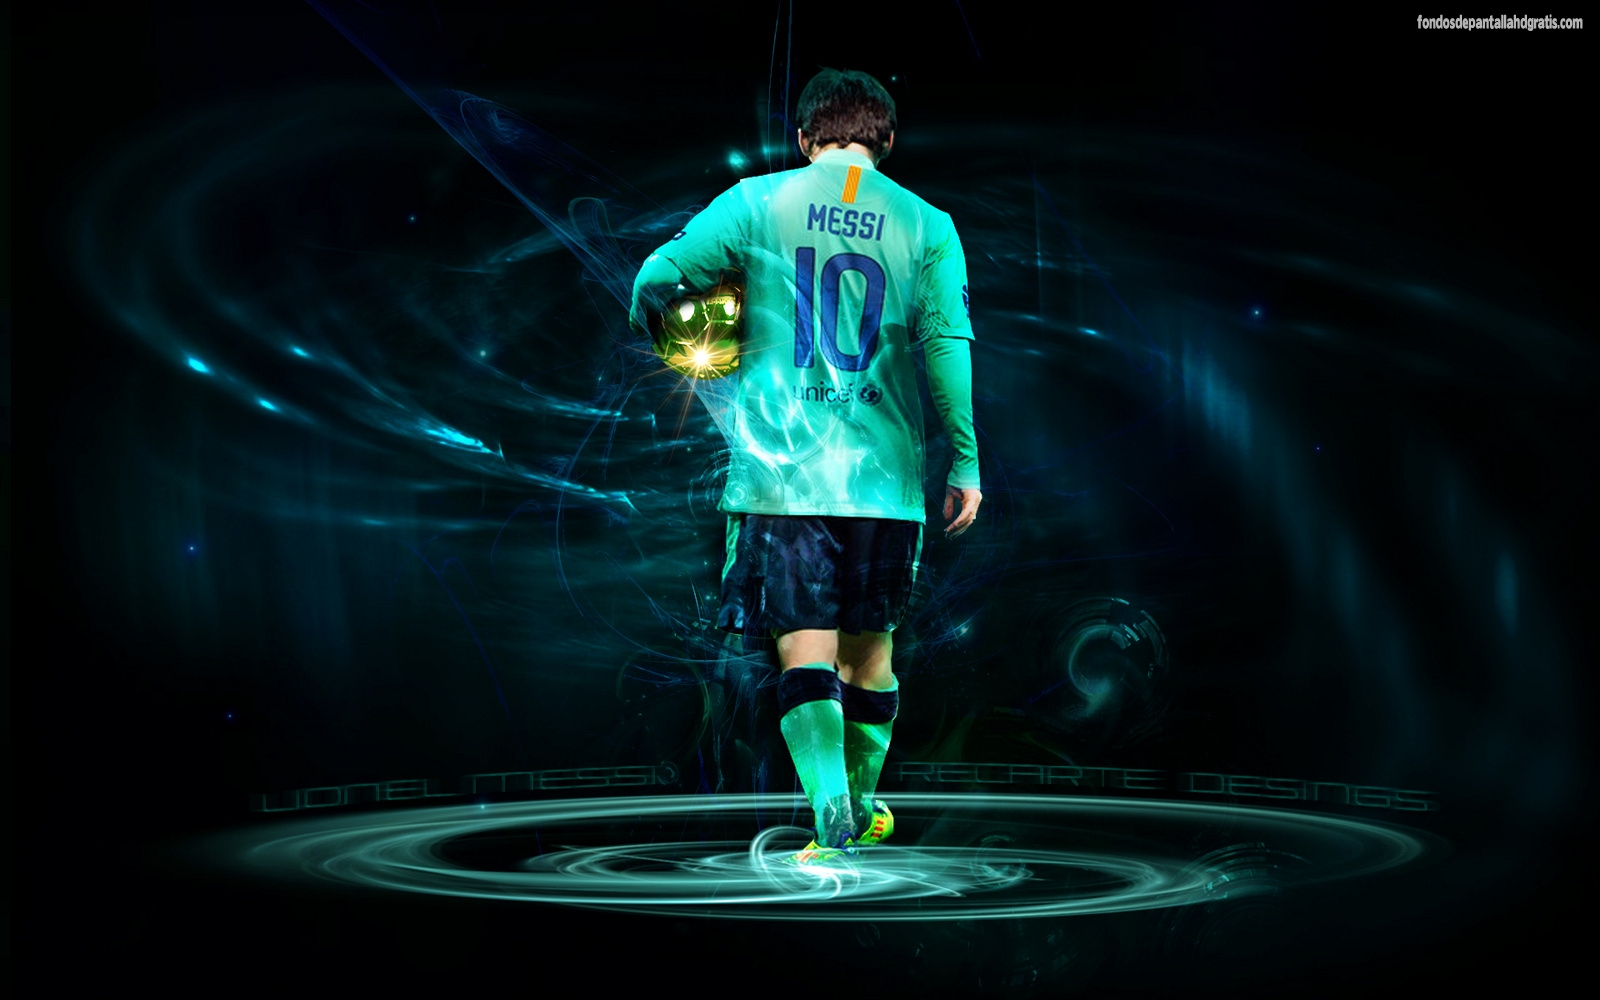 Hd Sports Wallpaper For Android: [44+] HD Sports Wallpapers 1080p On WallpaperSafari